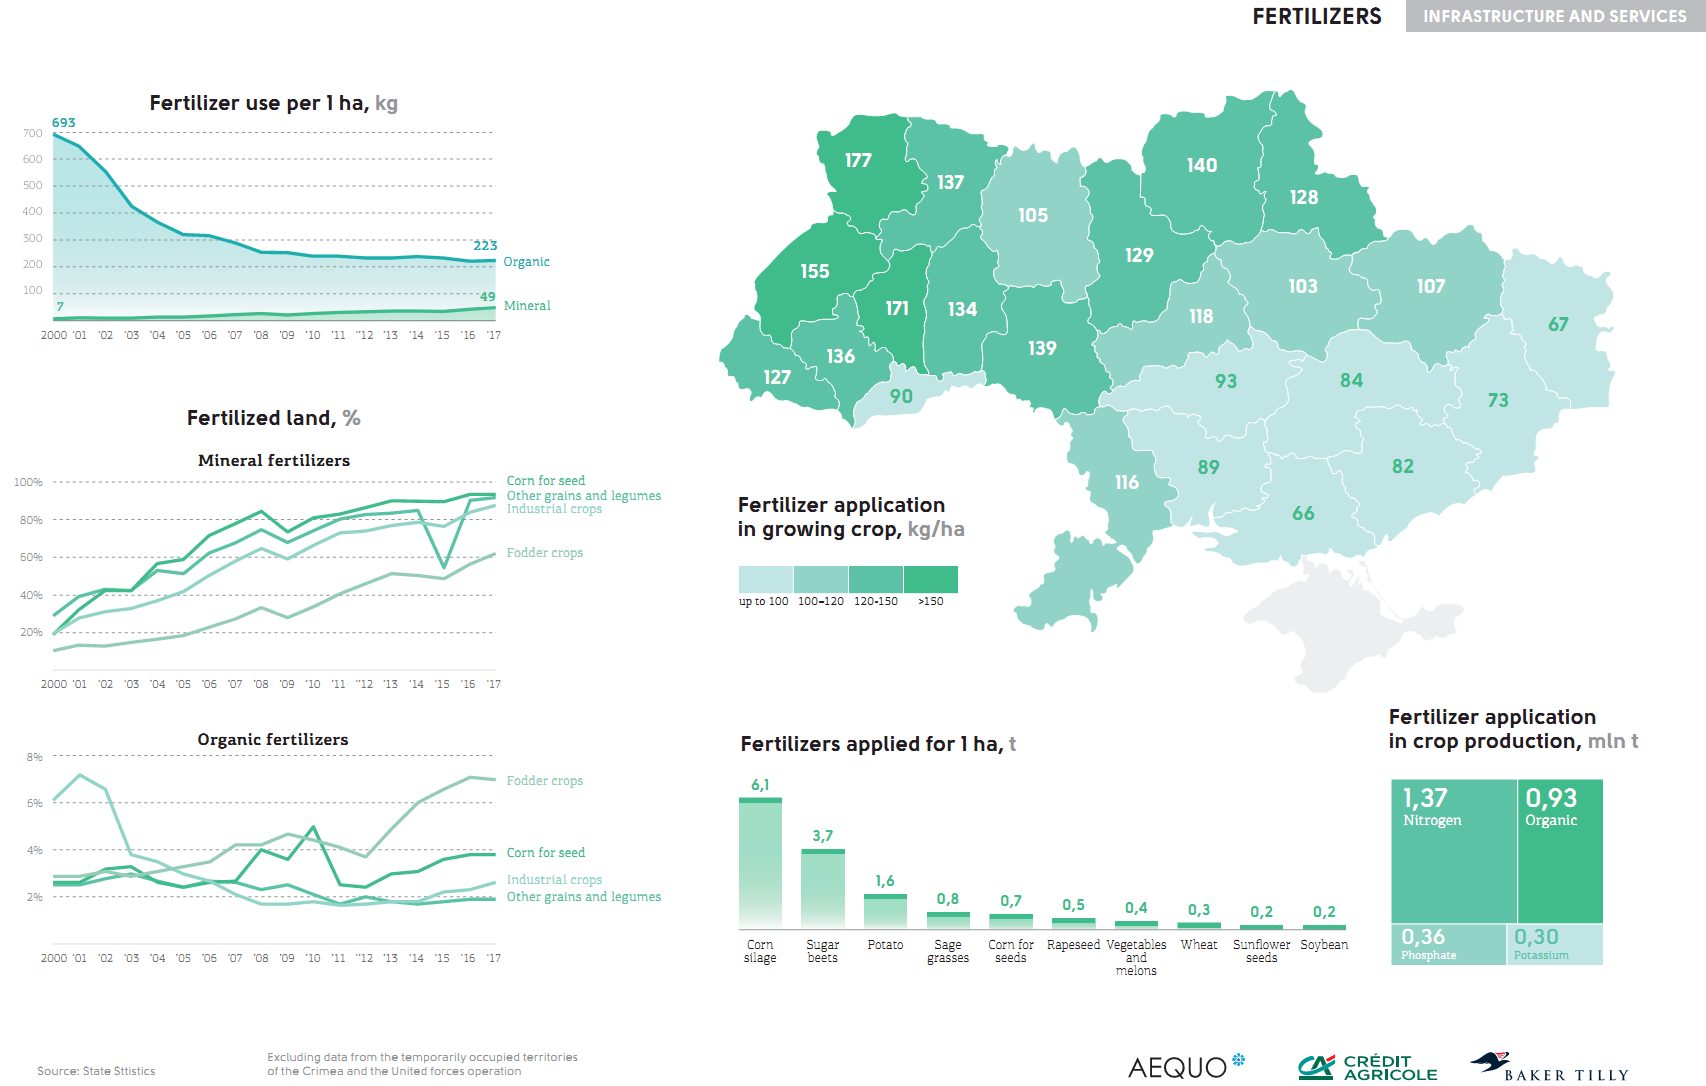 Fertilizers application in Ukraine (click for full resolution)